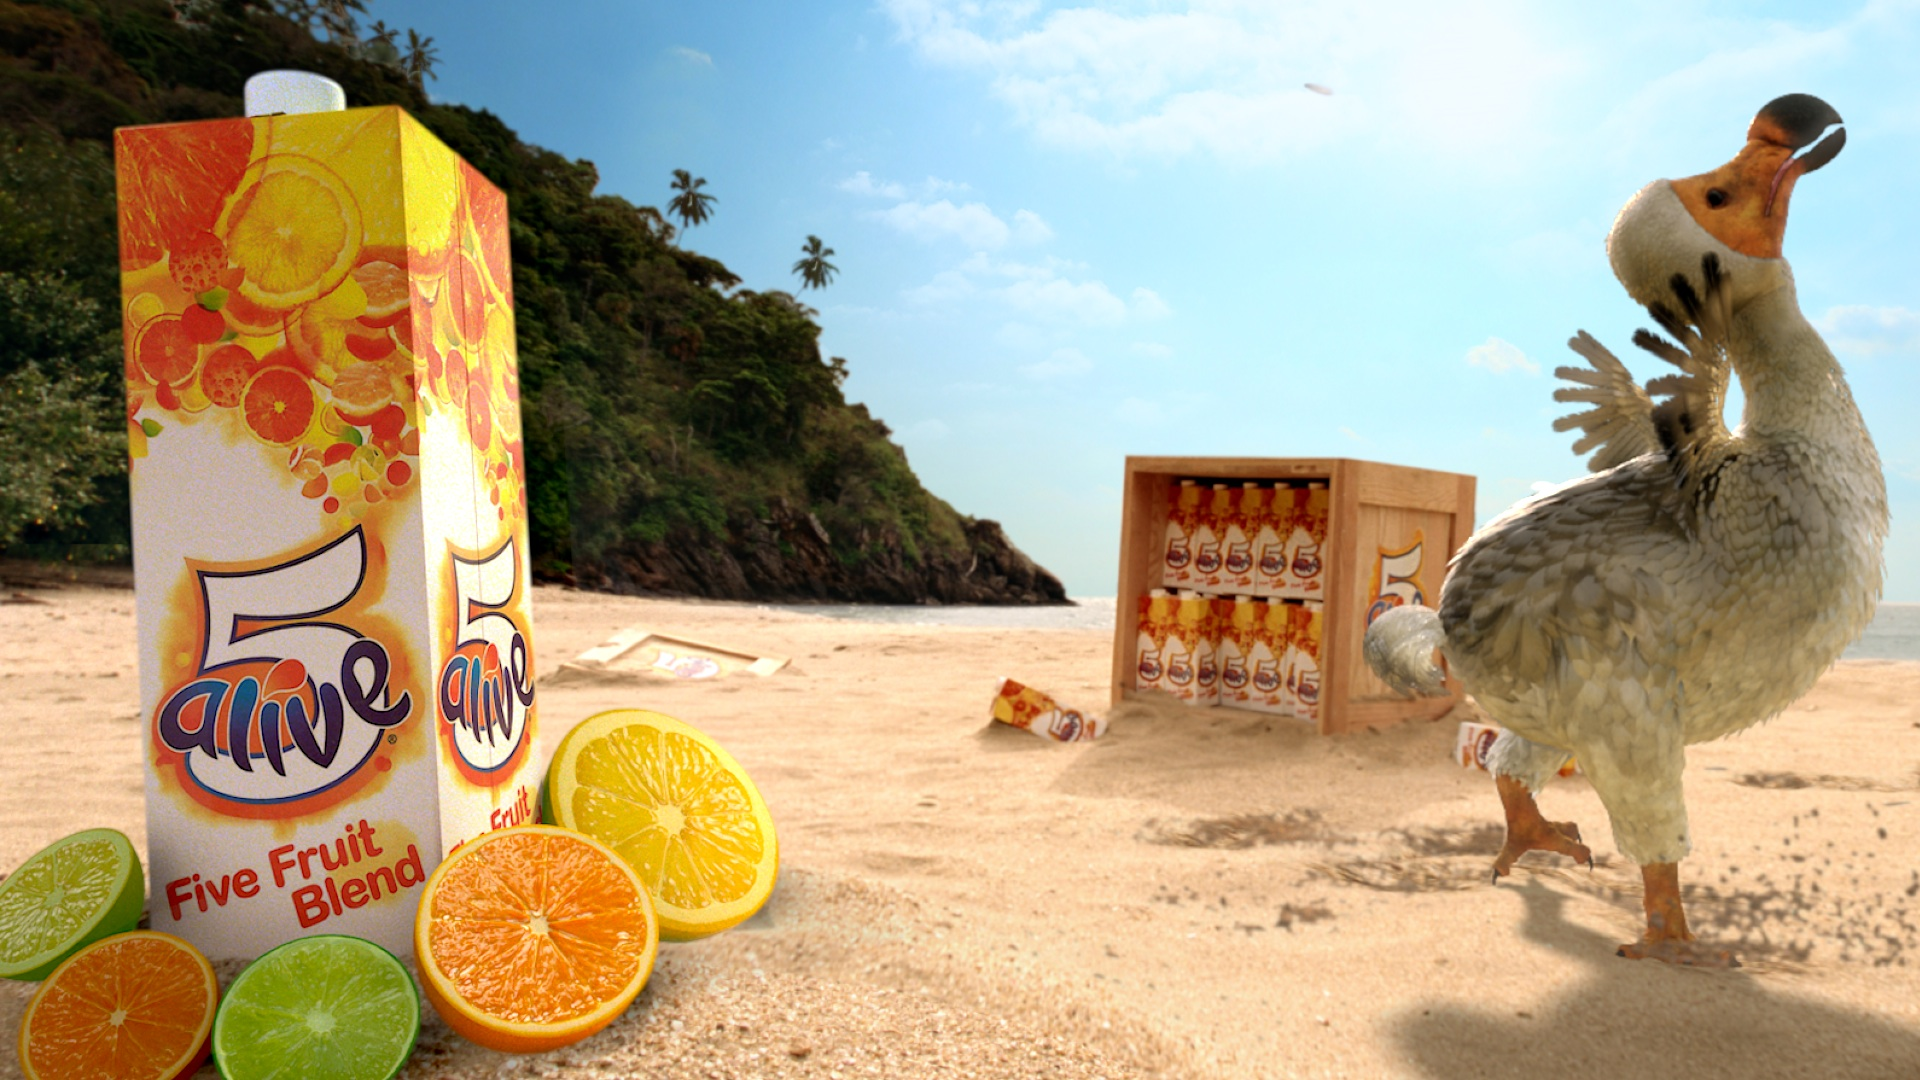 5 Alive The Fun And Fruit Packed Breakfast Juice Drink Is Back With A Nd New Quirky Tv Ad Featuring A Dancing Dodo And And New Apple Variant